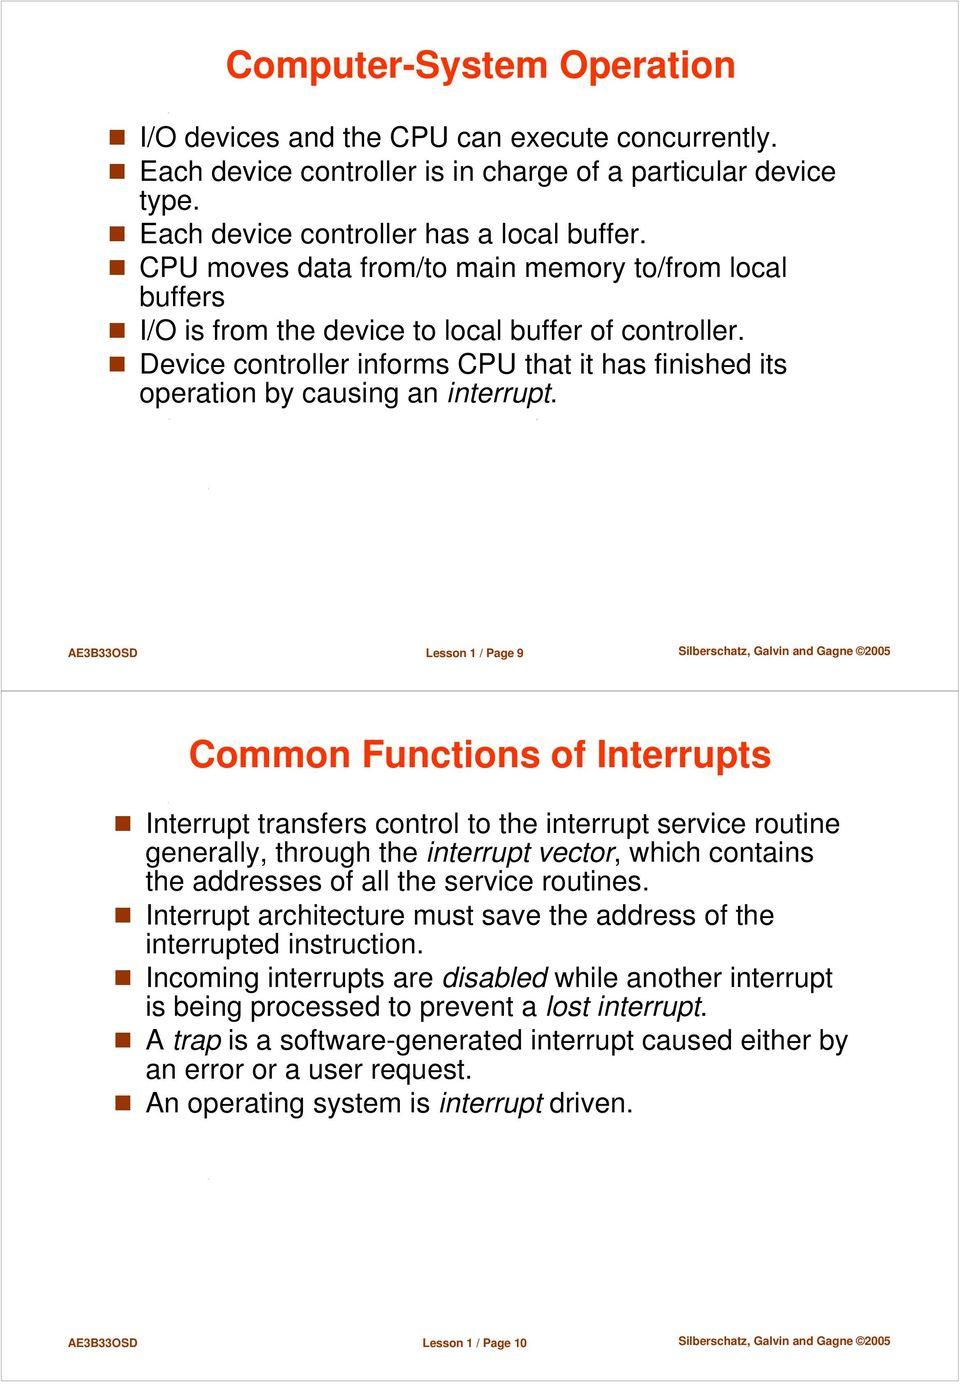 AE3B33OSD Lesson 1 / Page 9 Common Functions of Interrupts Interrupt transfers control to the interrupt service routine generally, through the interrupt vector, which contains the addresses of all